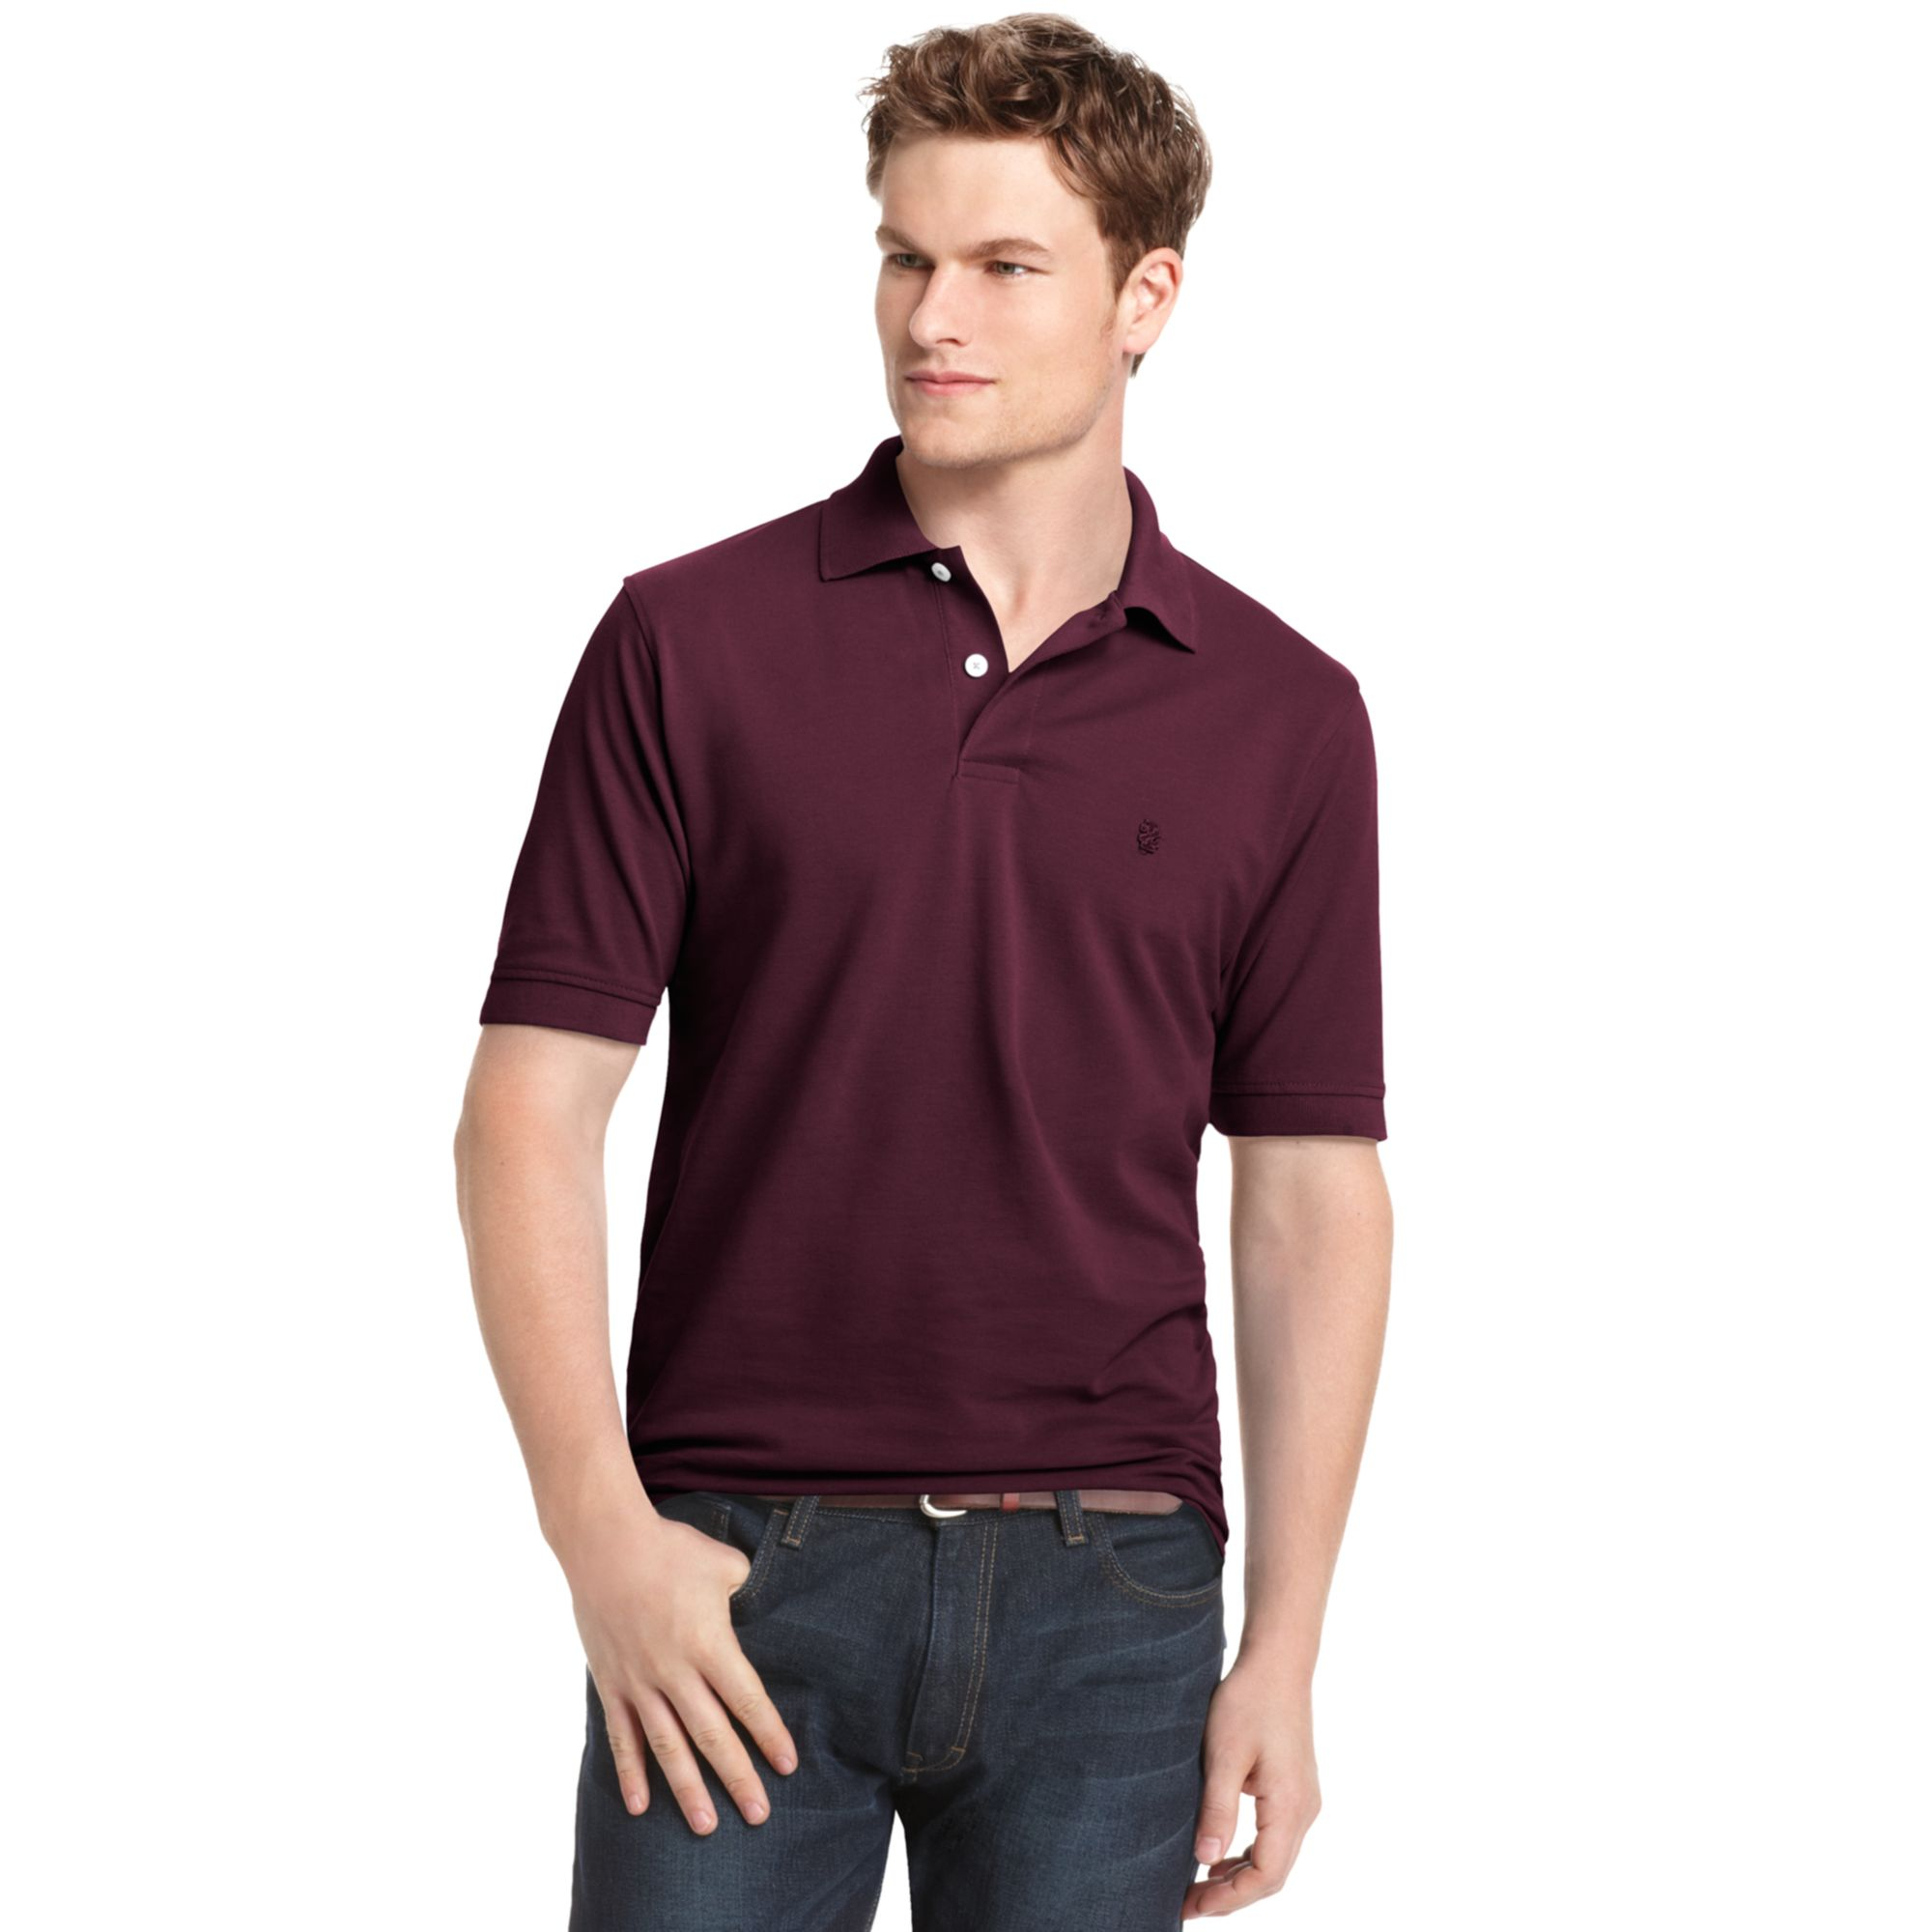 Izod big and tall shirt short sleeve pique polo in purple for Izod big and tall essential solid shirt